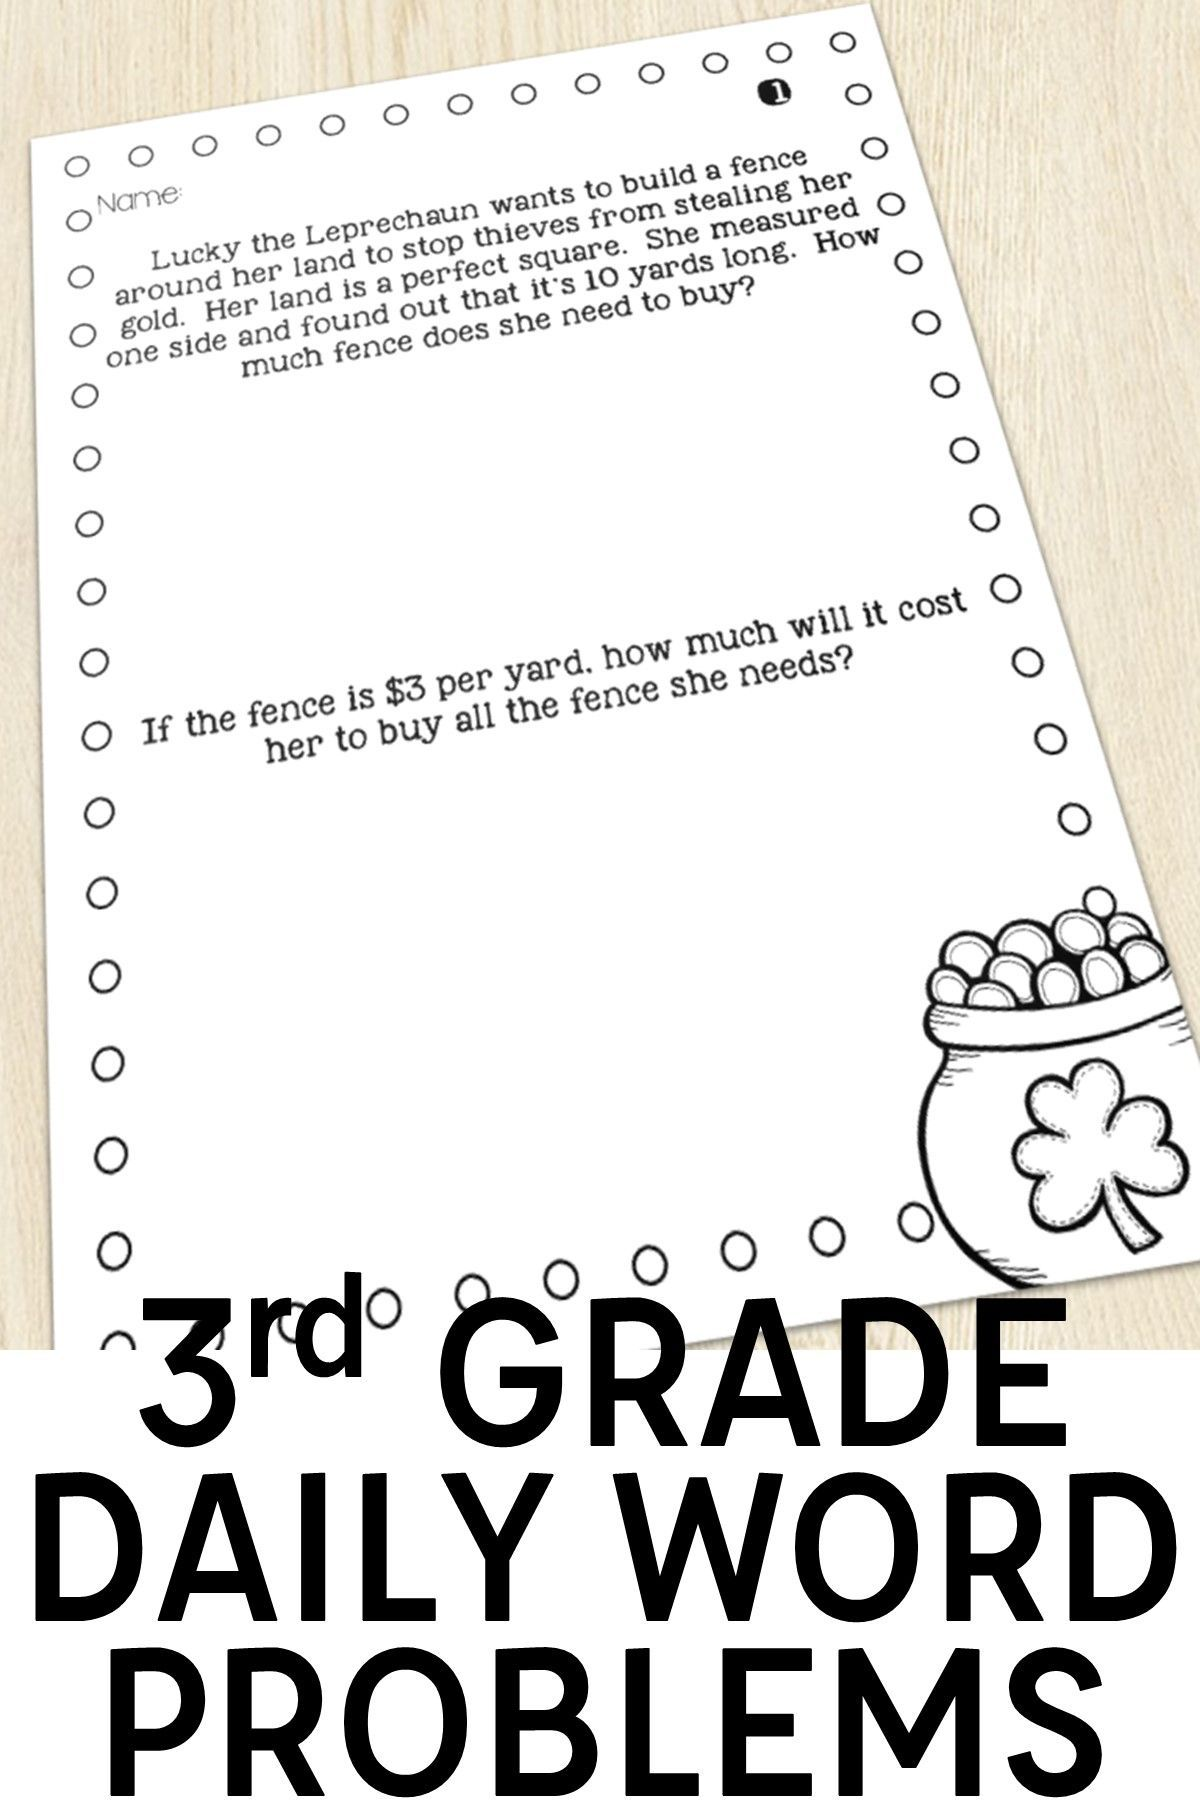 medium resolution of https://cute766.info/3rd-grade-multi-step-word-problems-of-the-day-bundle-word-problems-3rd-grade-words-multi/